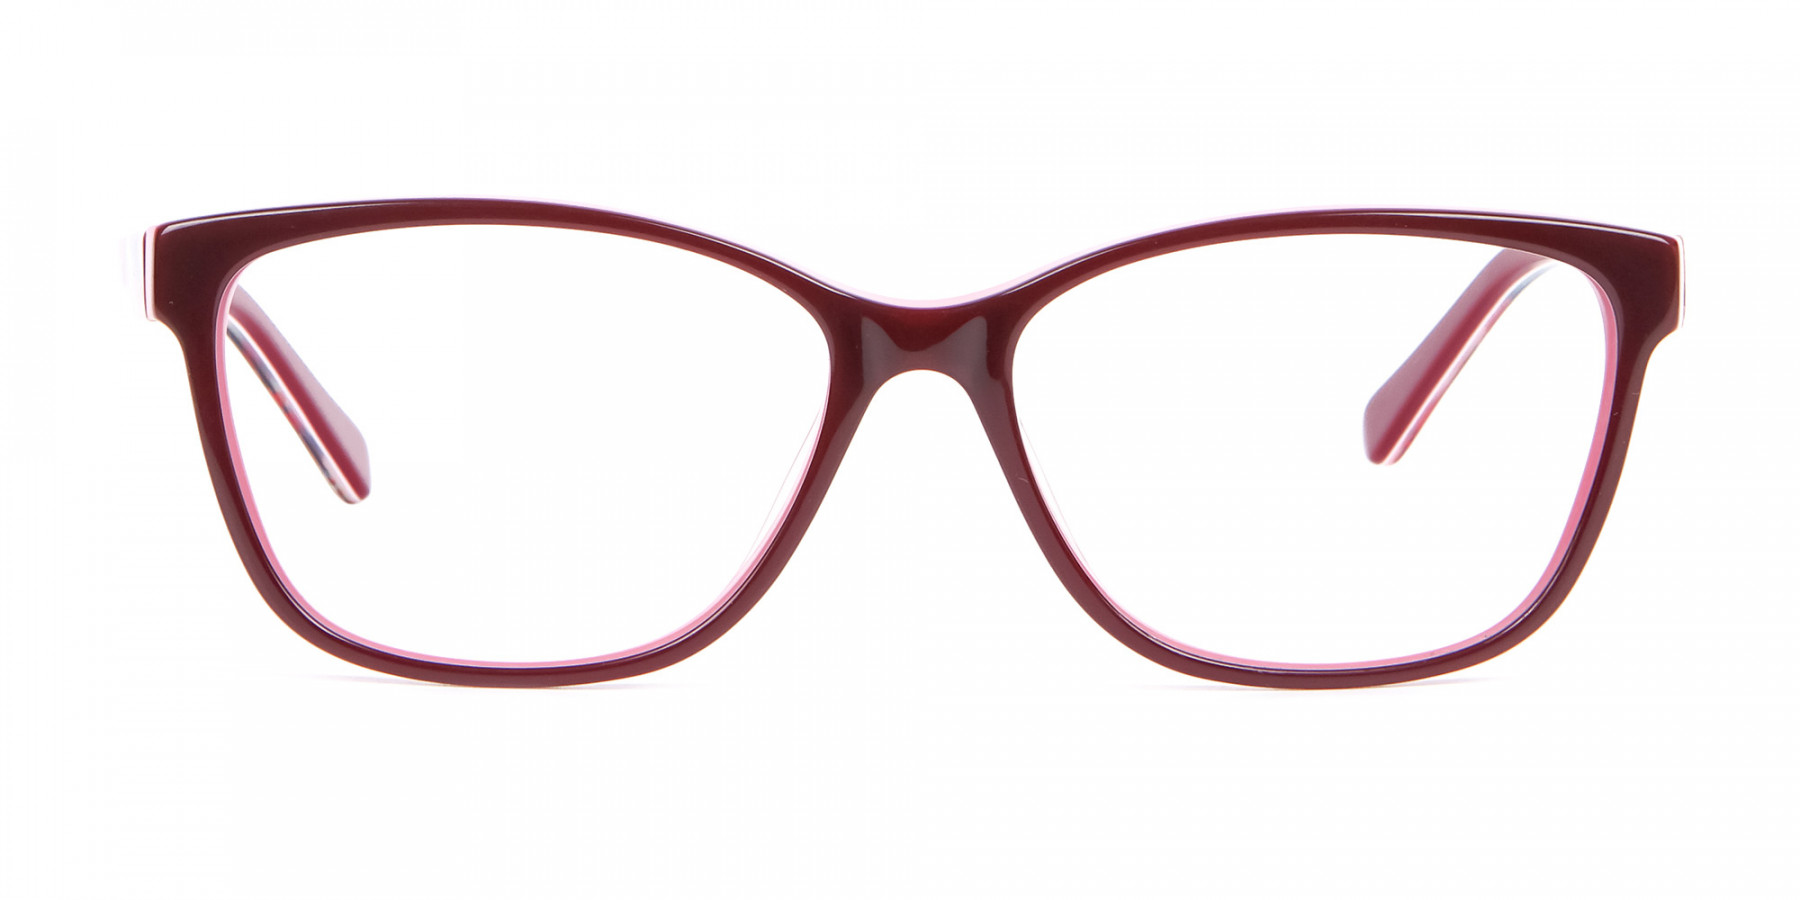 Two-tone Red Glasses for All Occasions-1